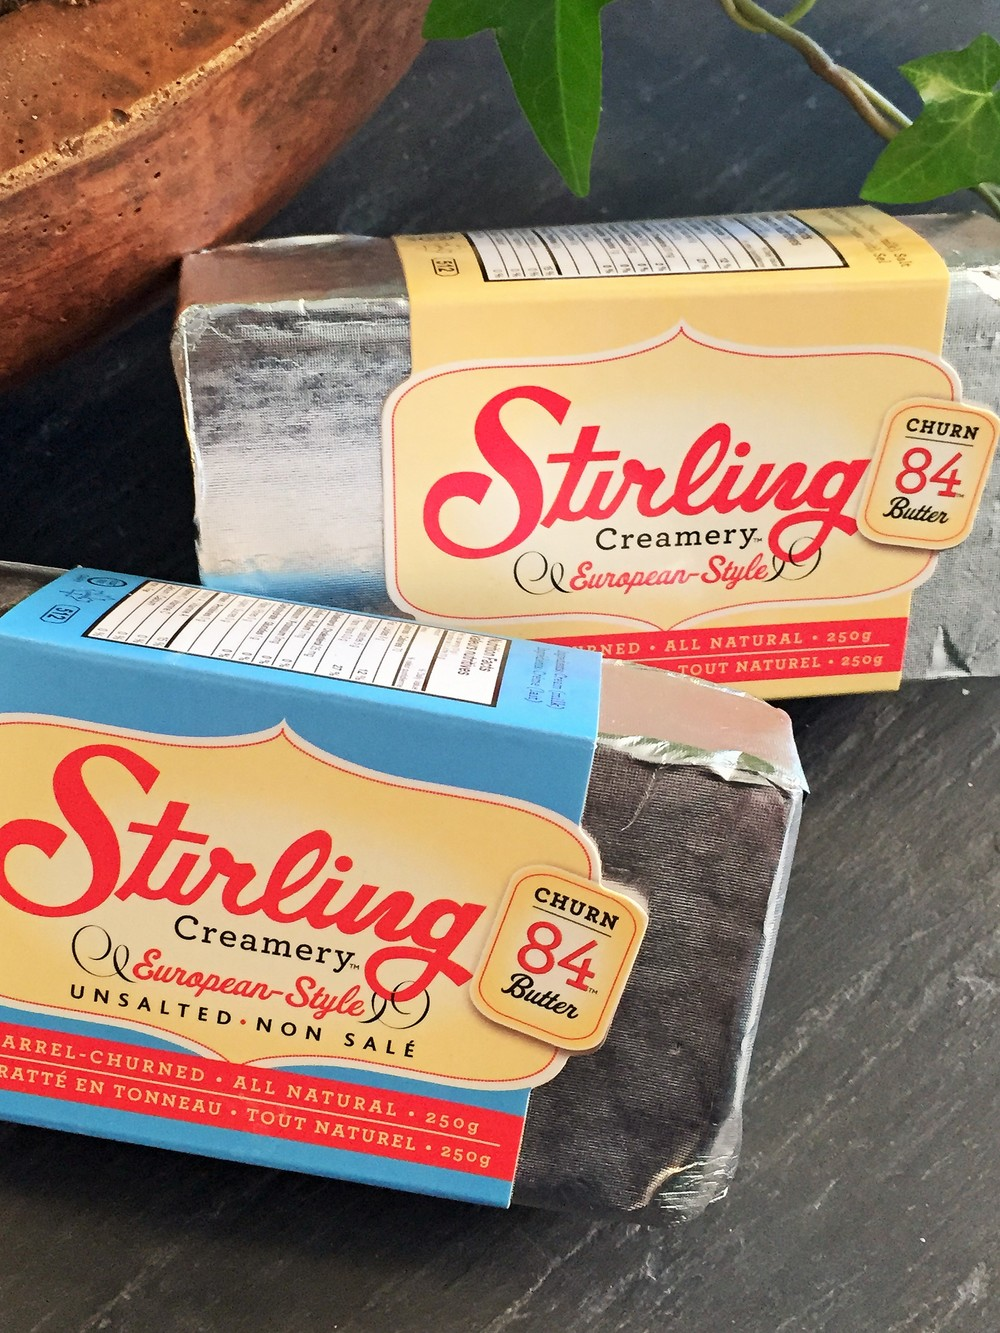 Easier these days to find Stirling 84, BUT... sometimes they only have salted, and baking requires unsalted.